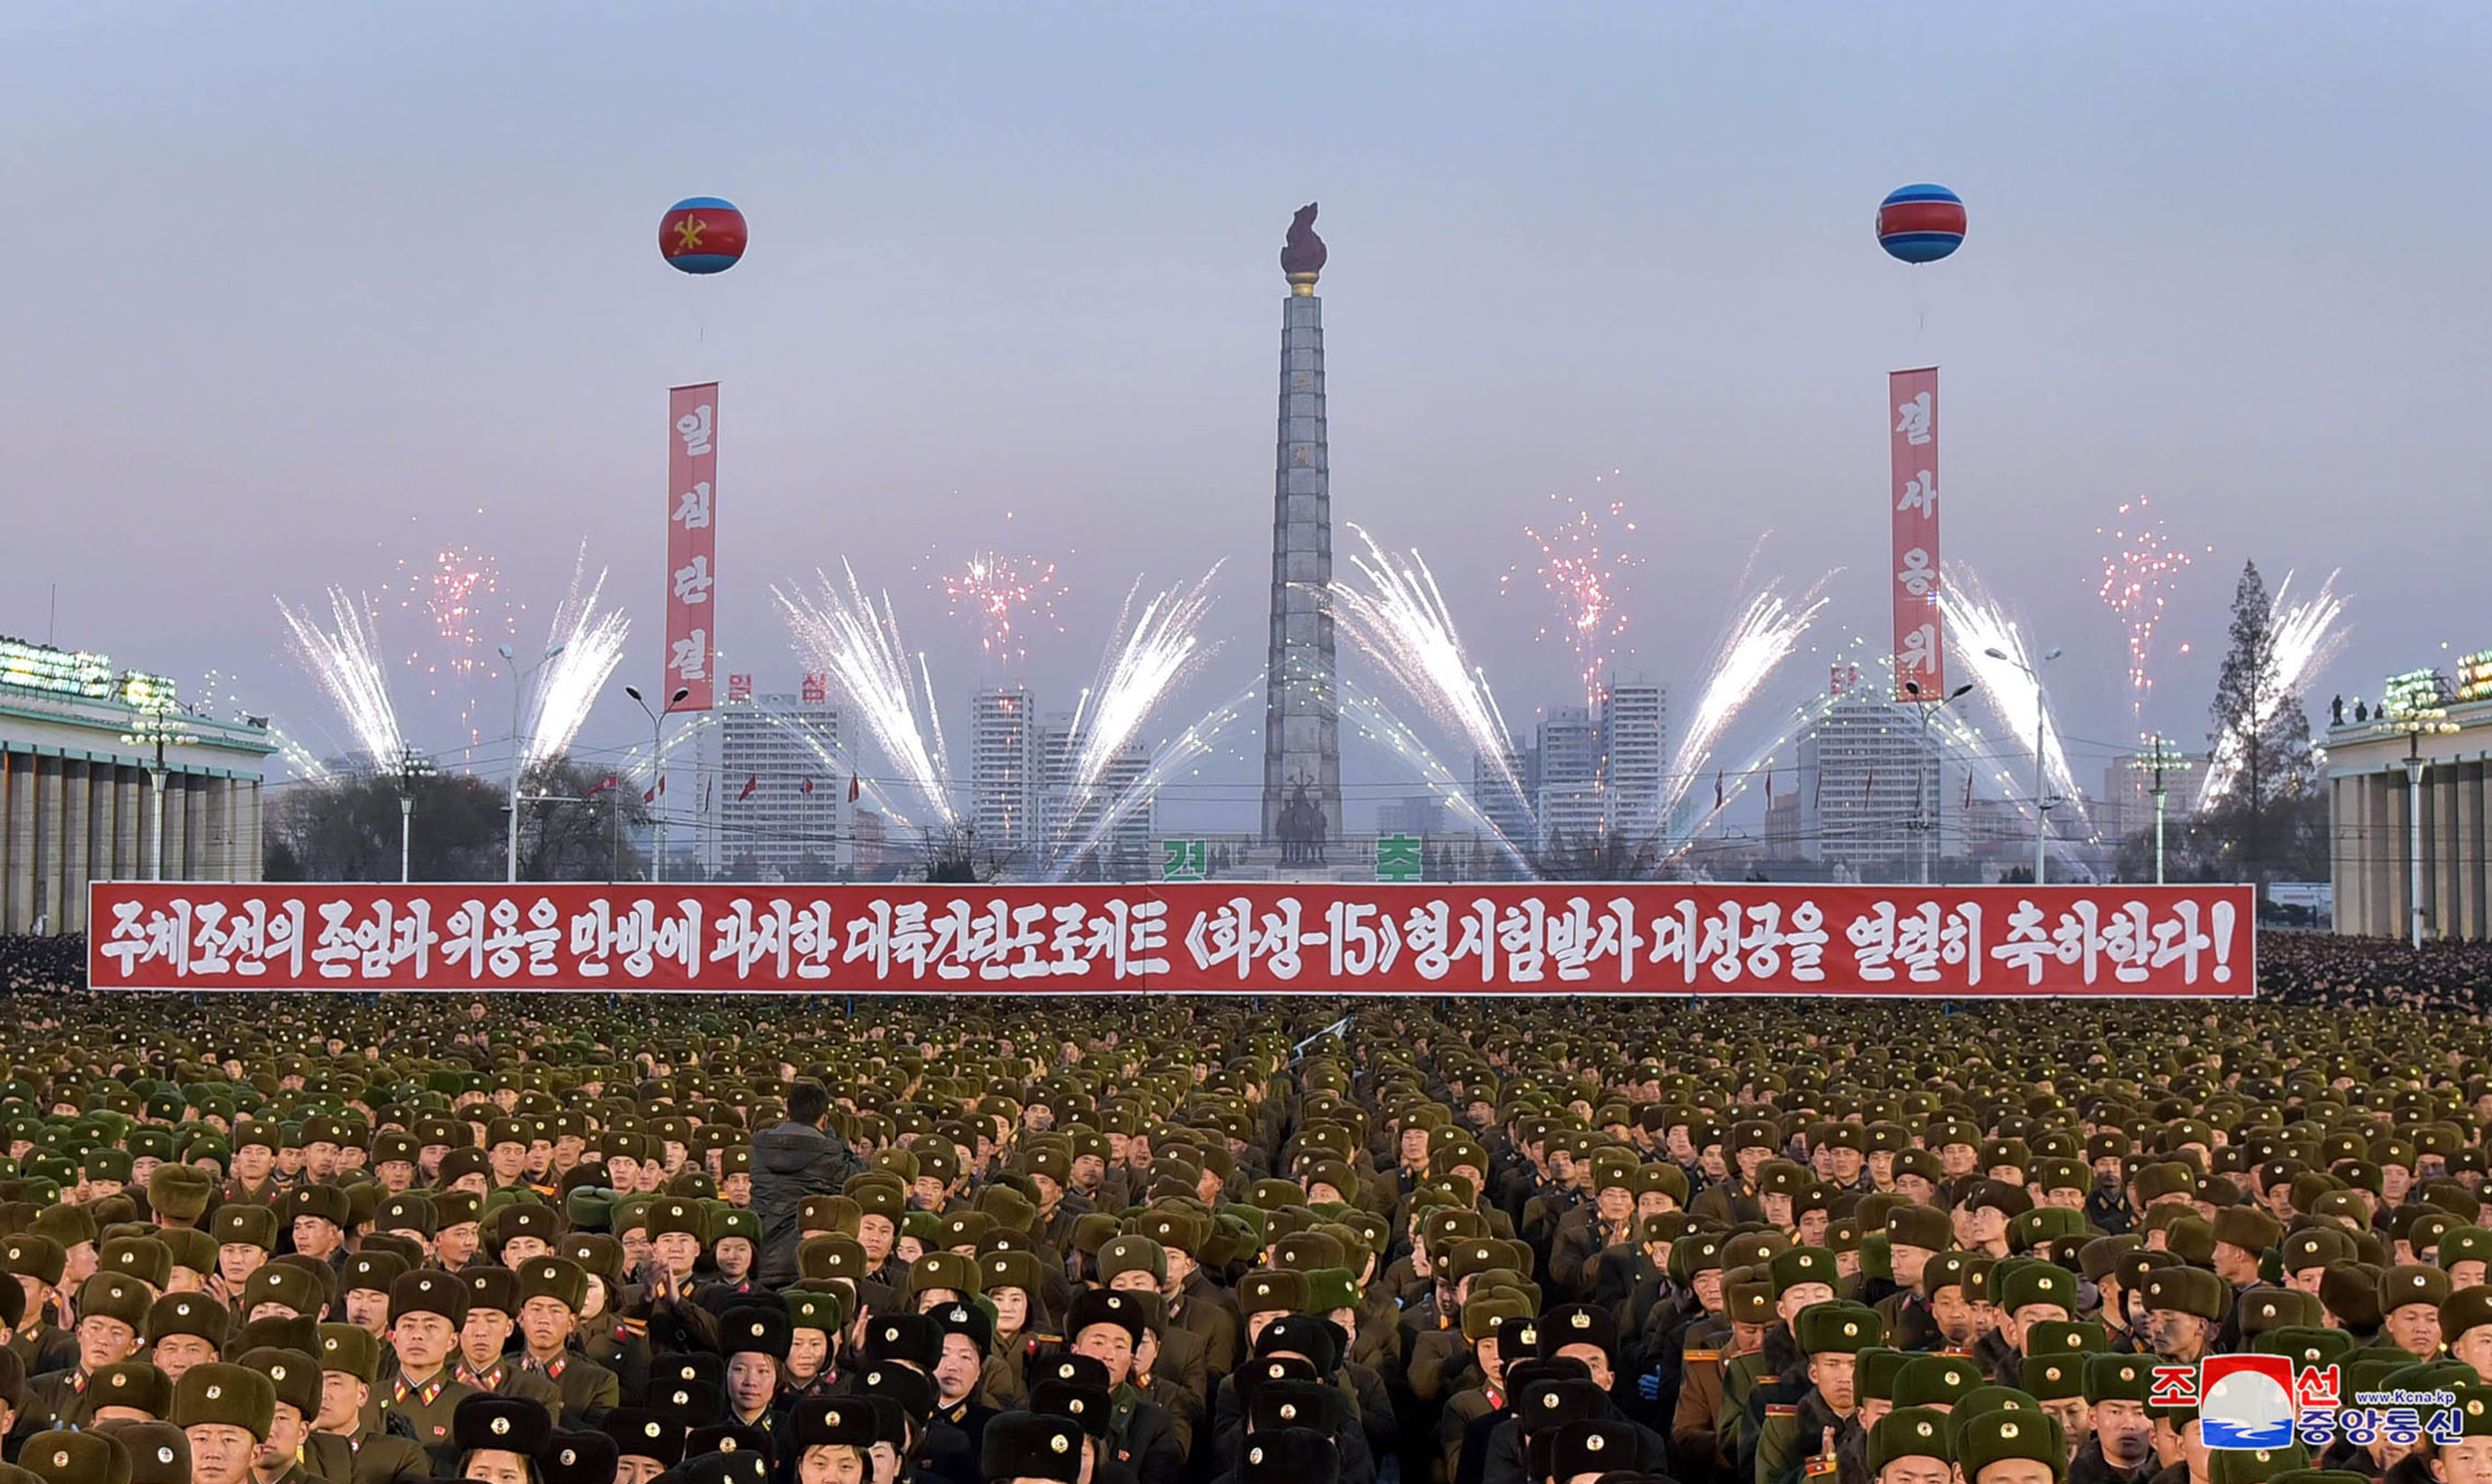 This picture released by North Korea's official Korean Central News Agency on Dec. 2, 2017 shows North Korean soldiers and residents holding a rally in Pyongyang.